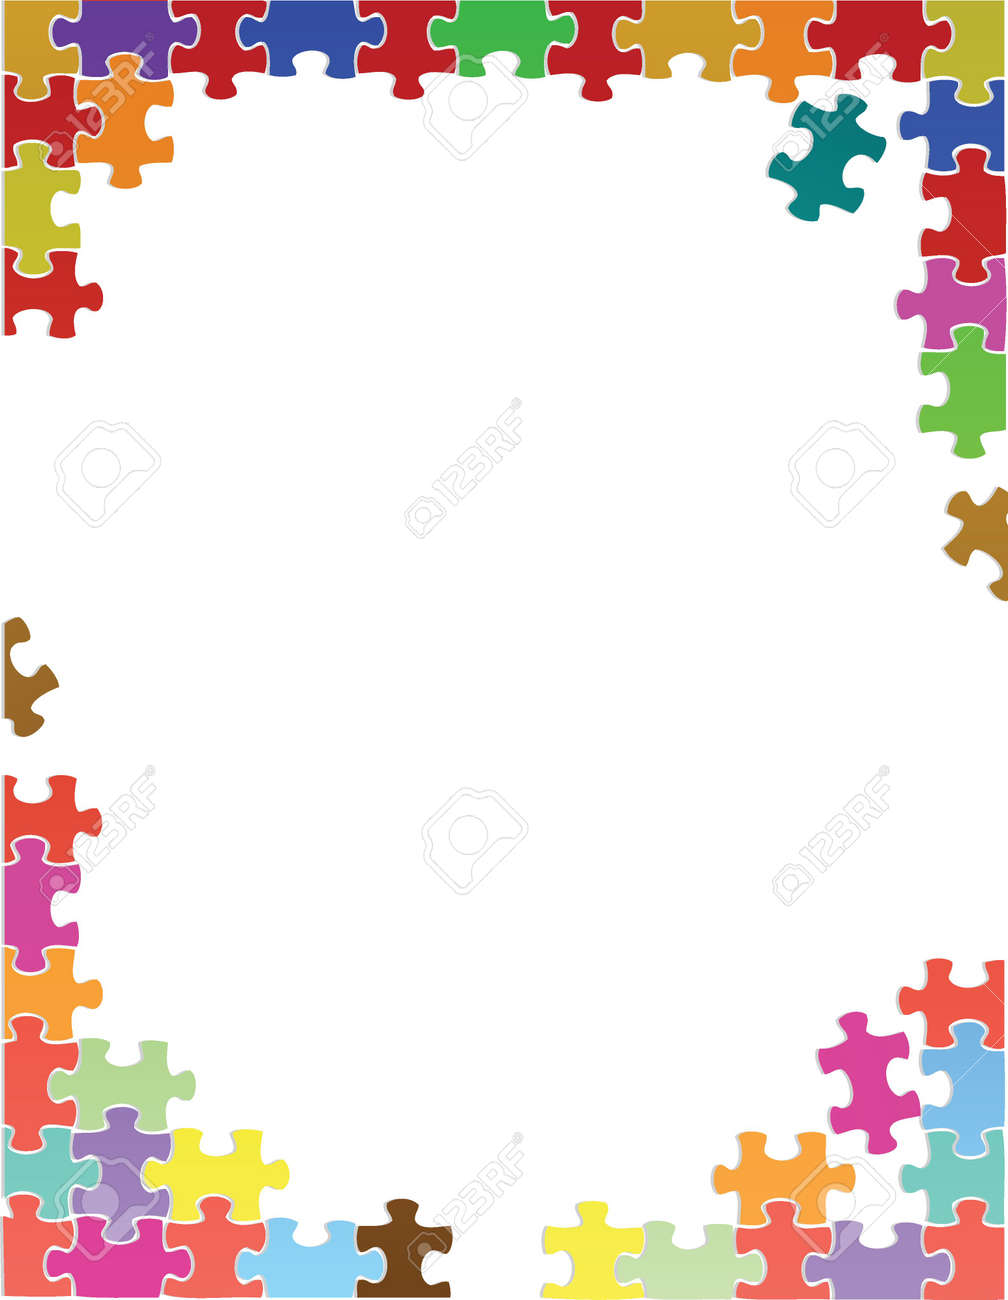 purple puzzle pieces border template illustration design over